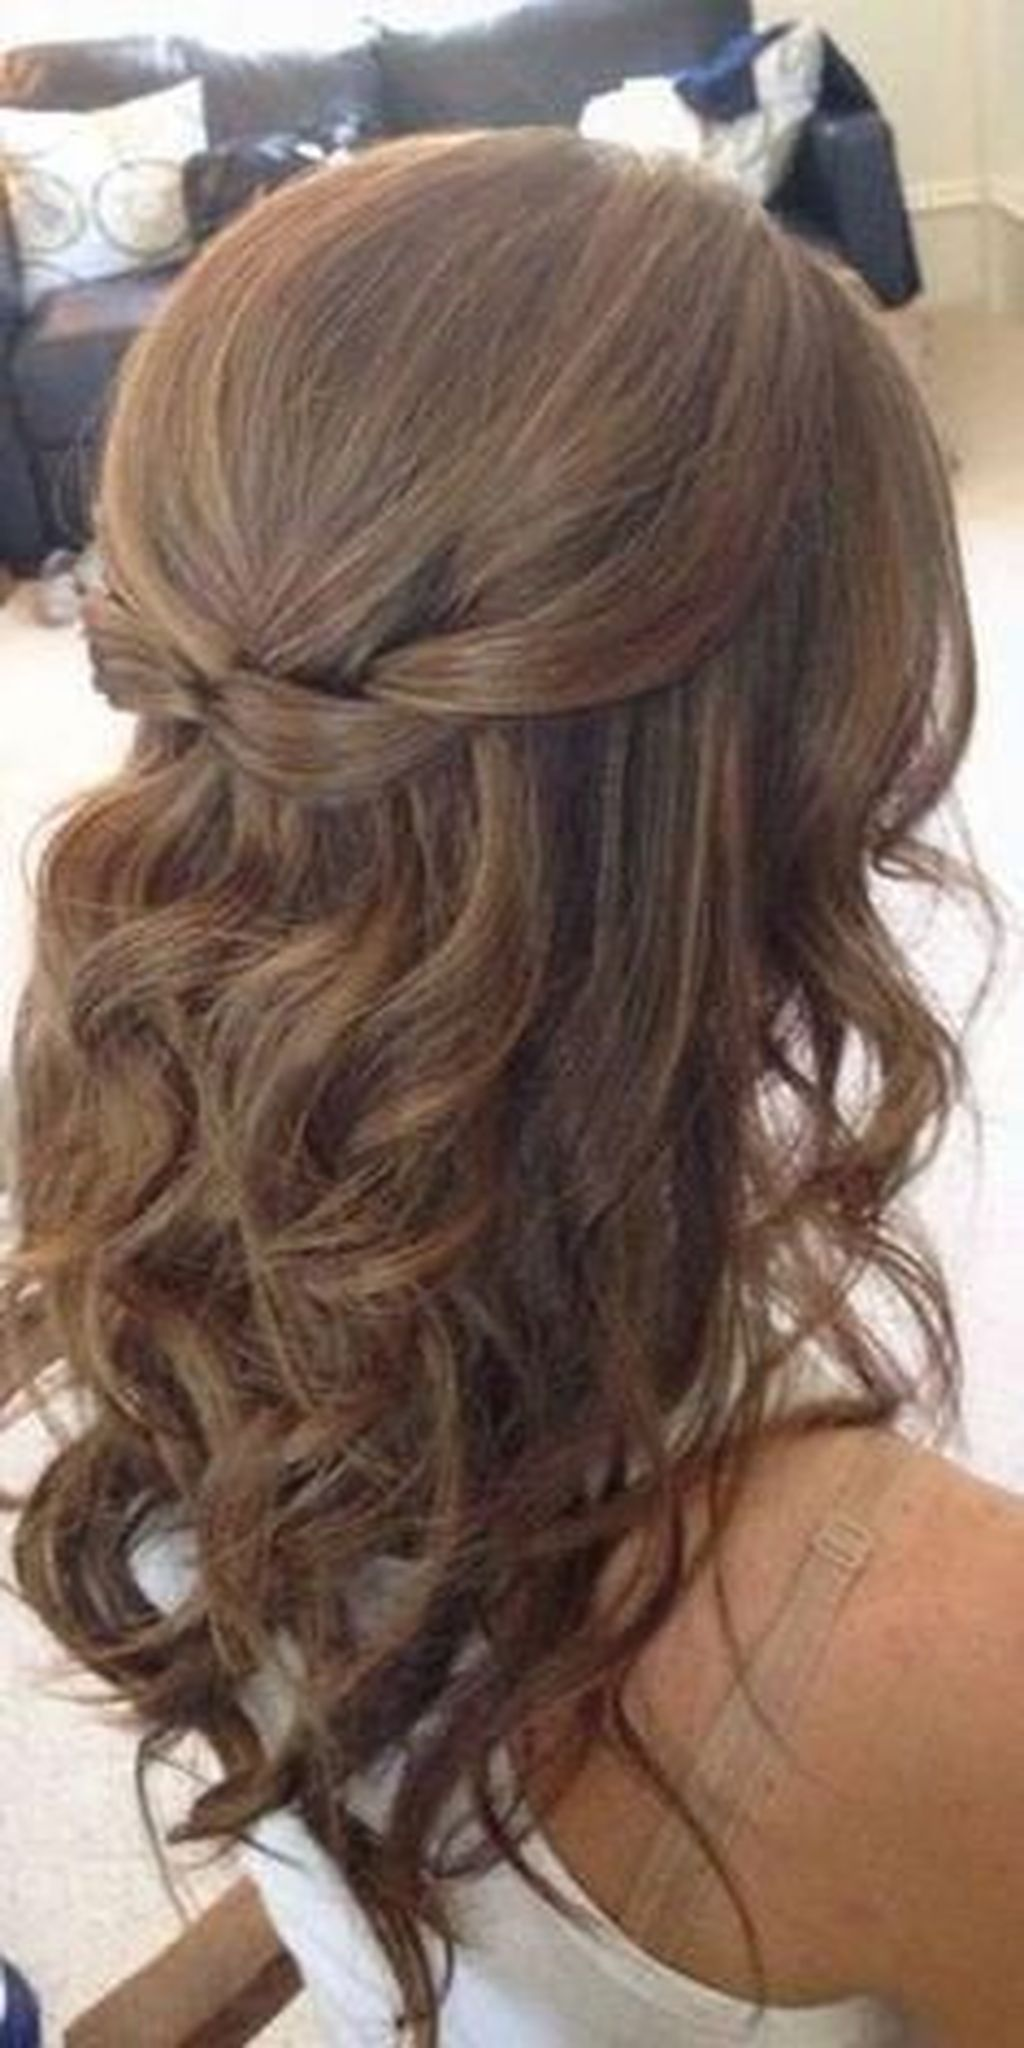 39 Adorable Braided Wedding Hair Ideas Wedding Forward In 2020 Braided Hairstyles For Wedding Braids For Long Hair Hair Styles